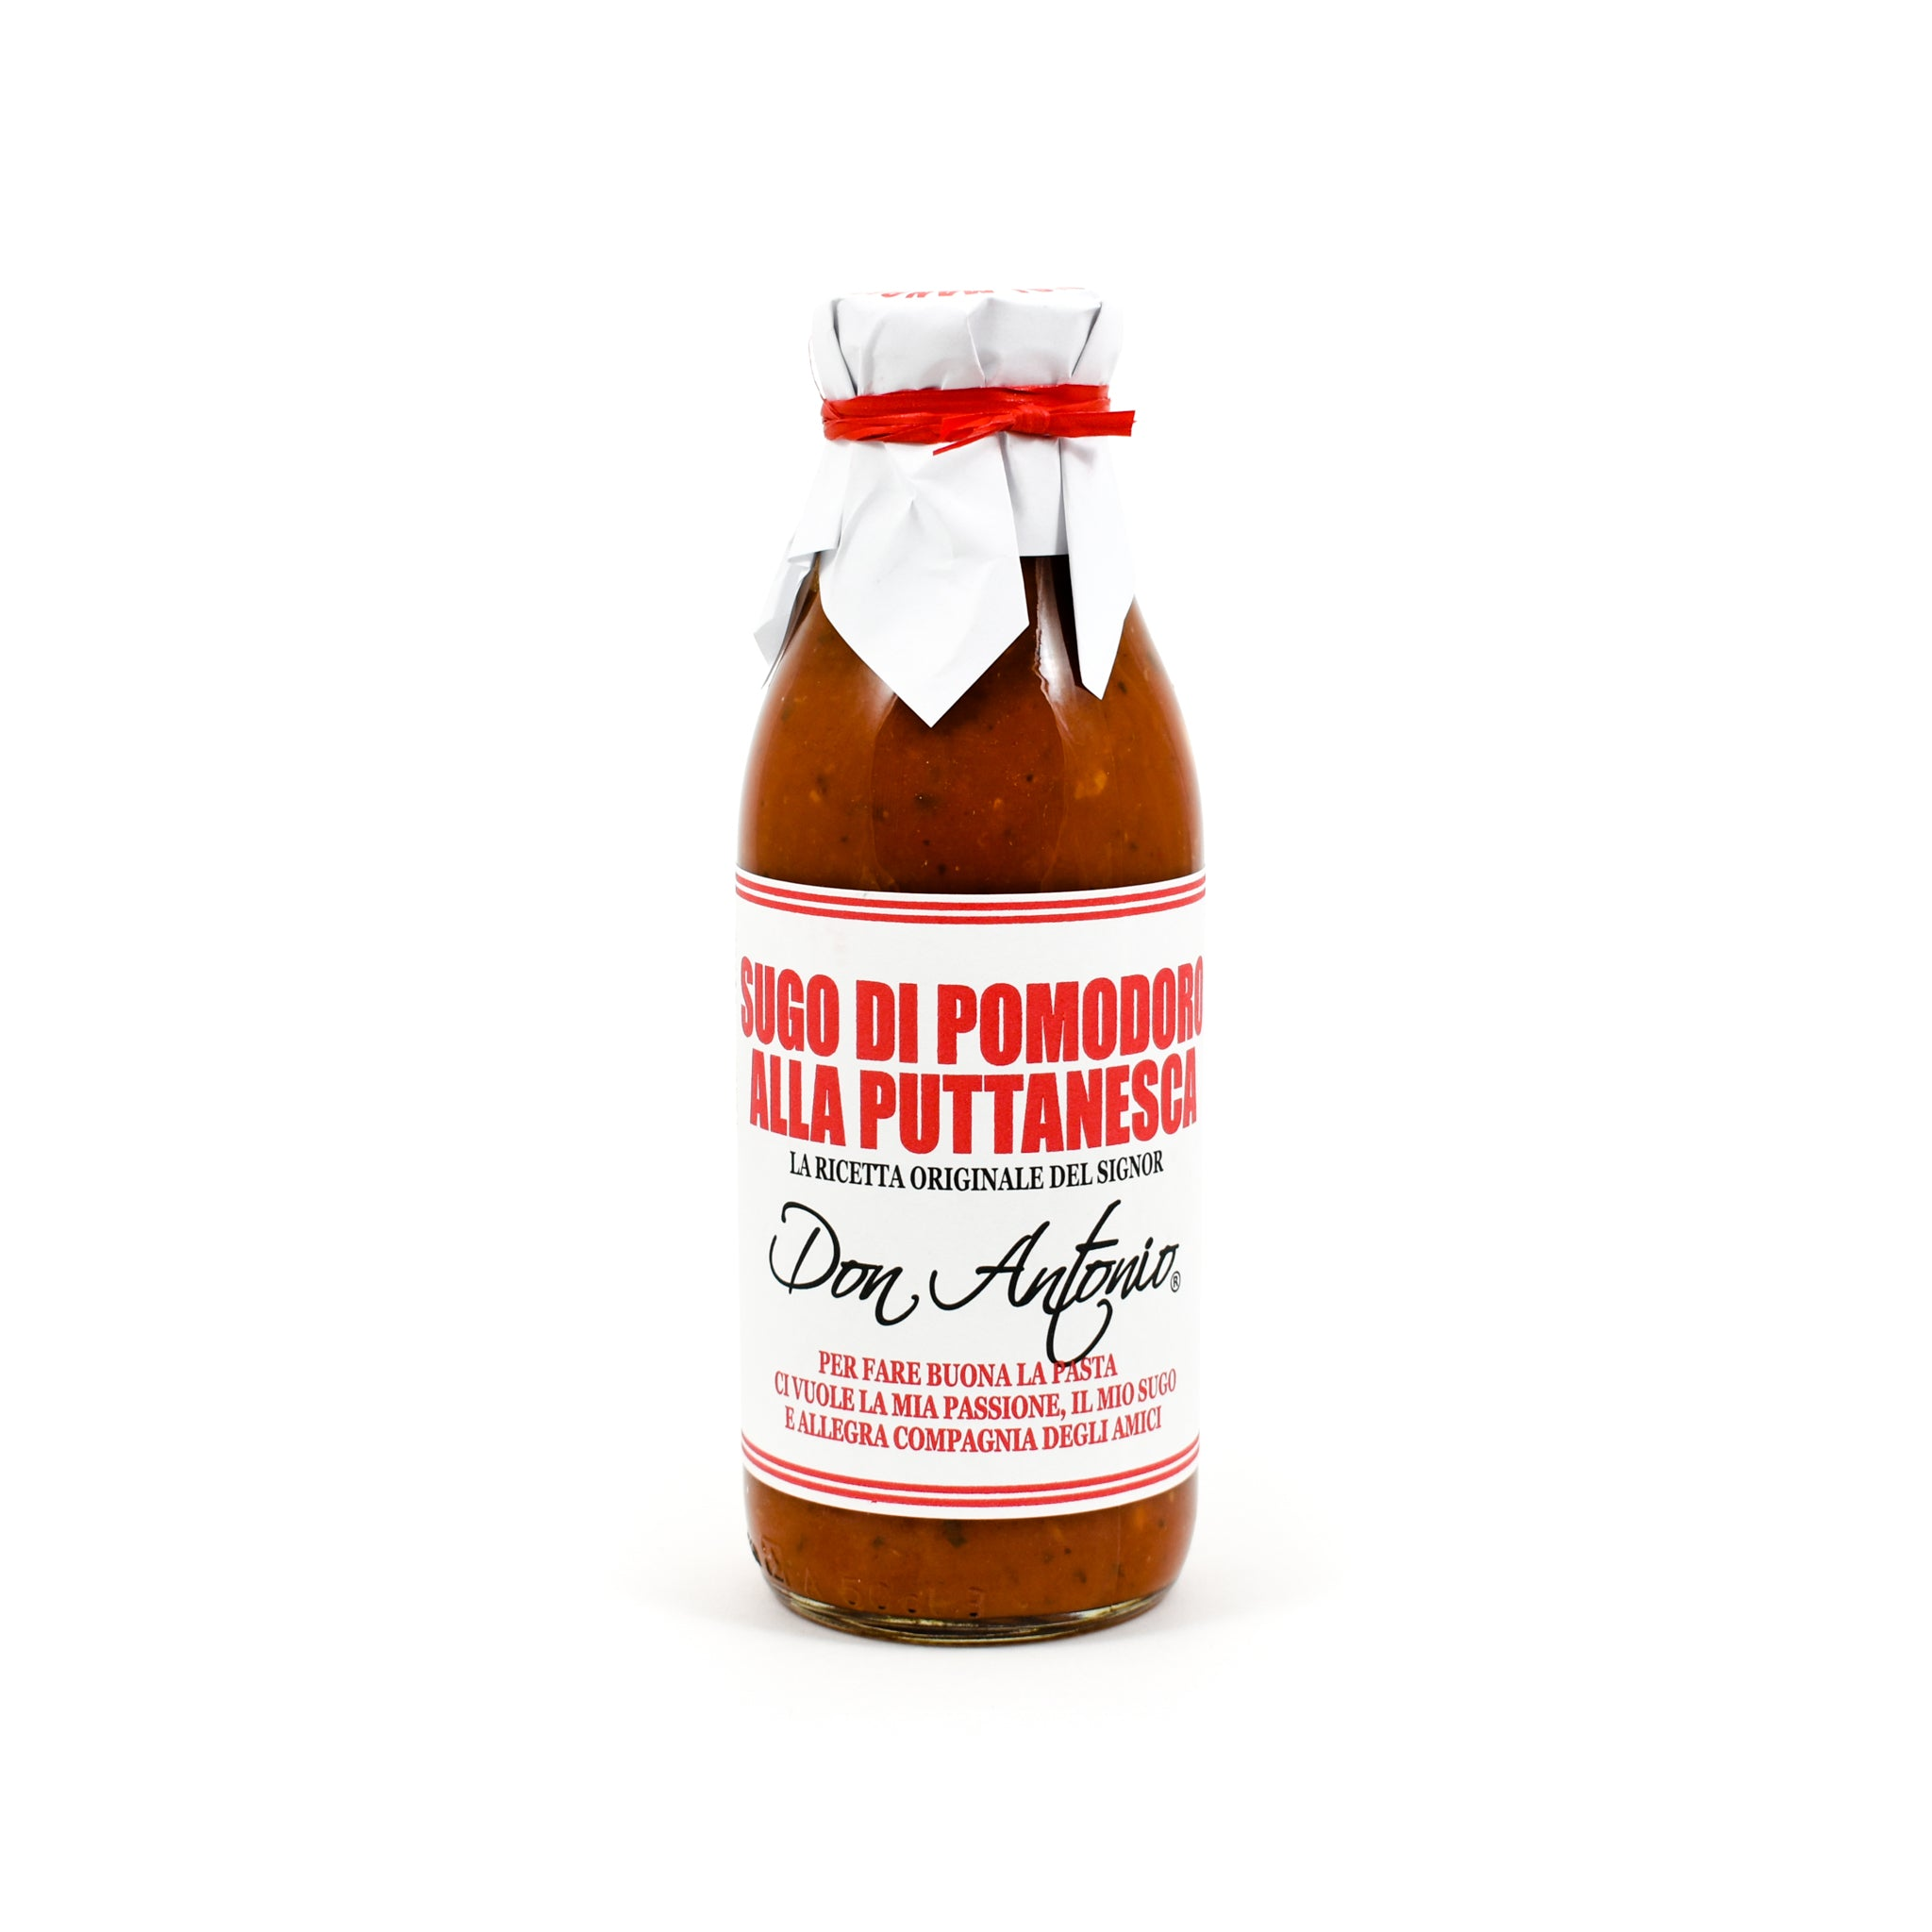 Don Antonio Puttanesca Sauce 500g Ingredients Sauces & Condiments Italian Food